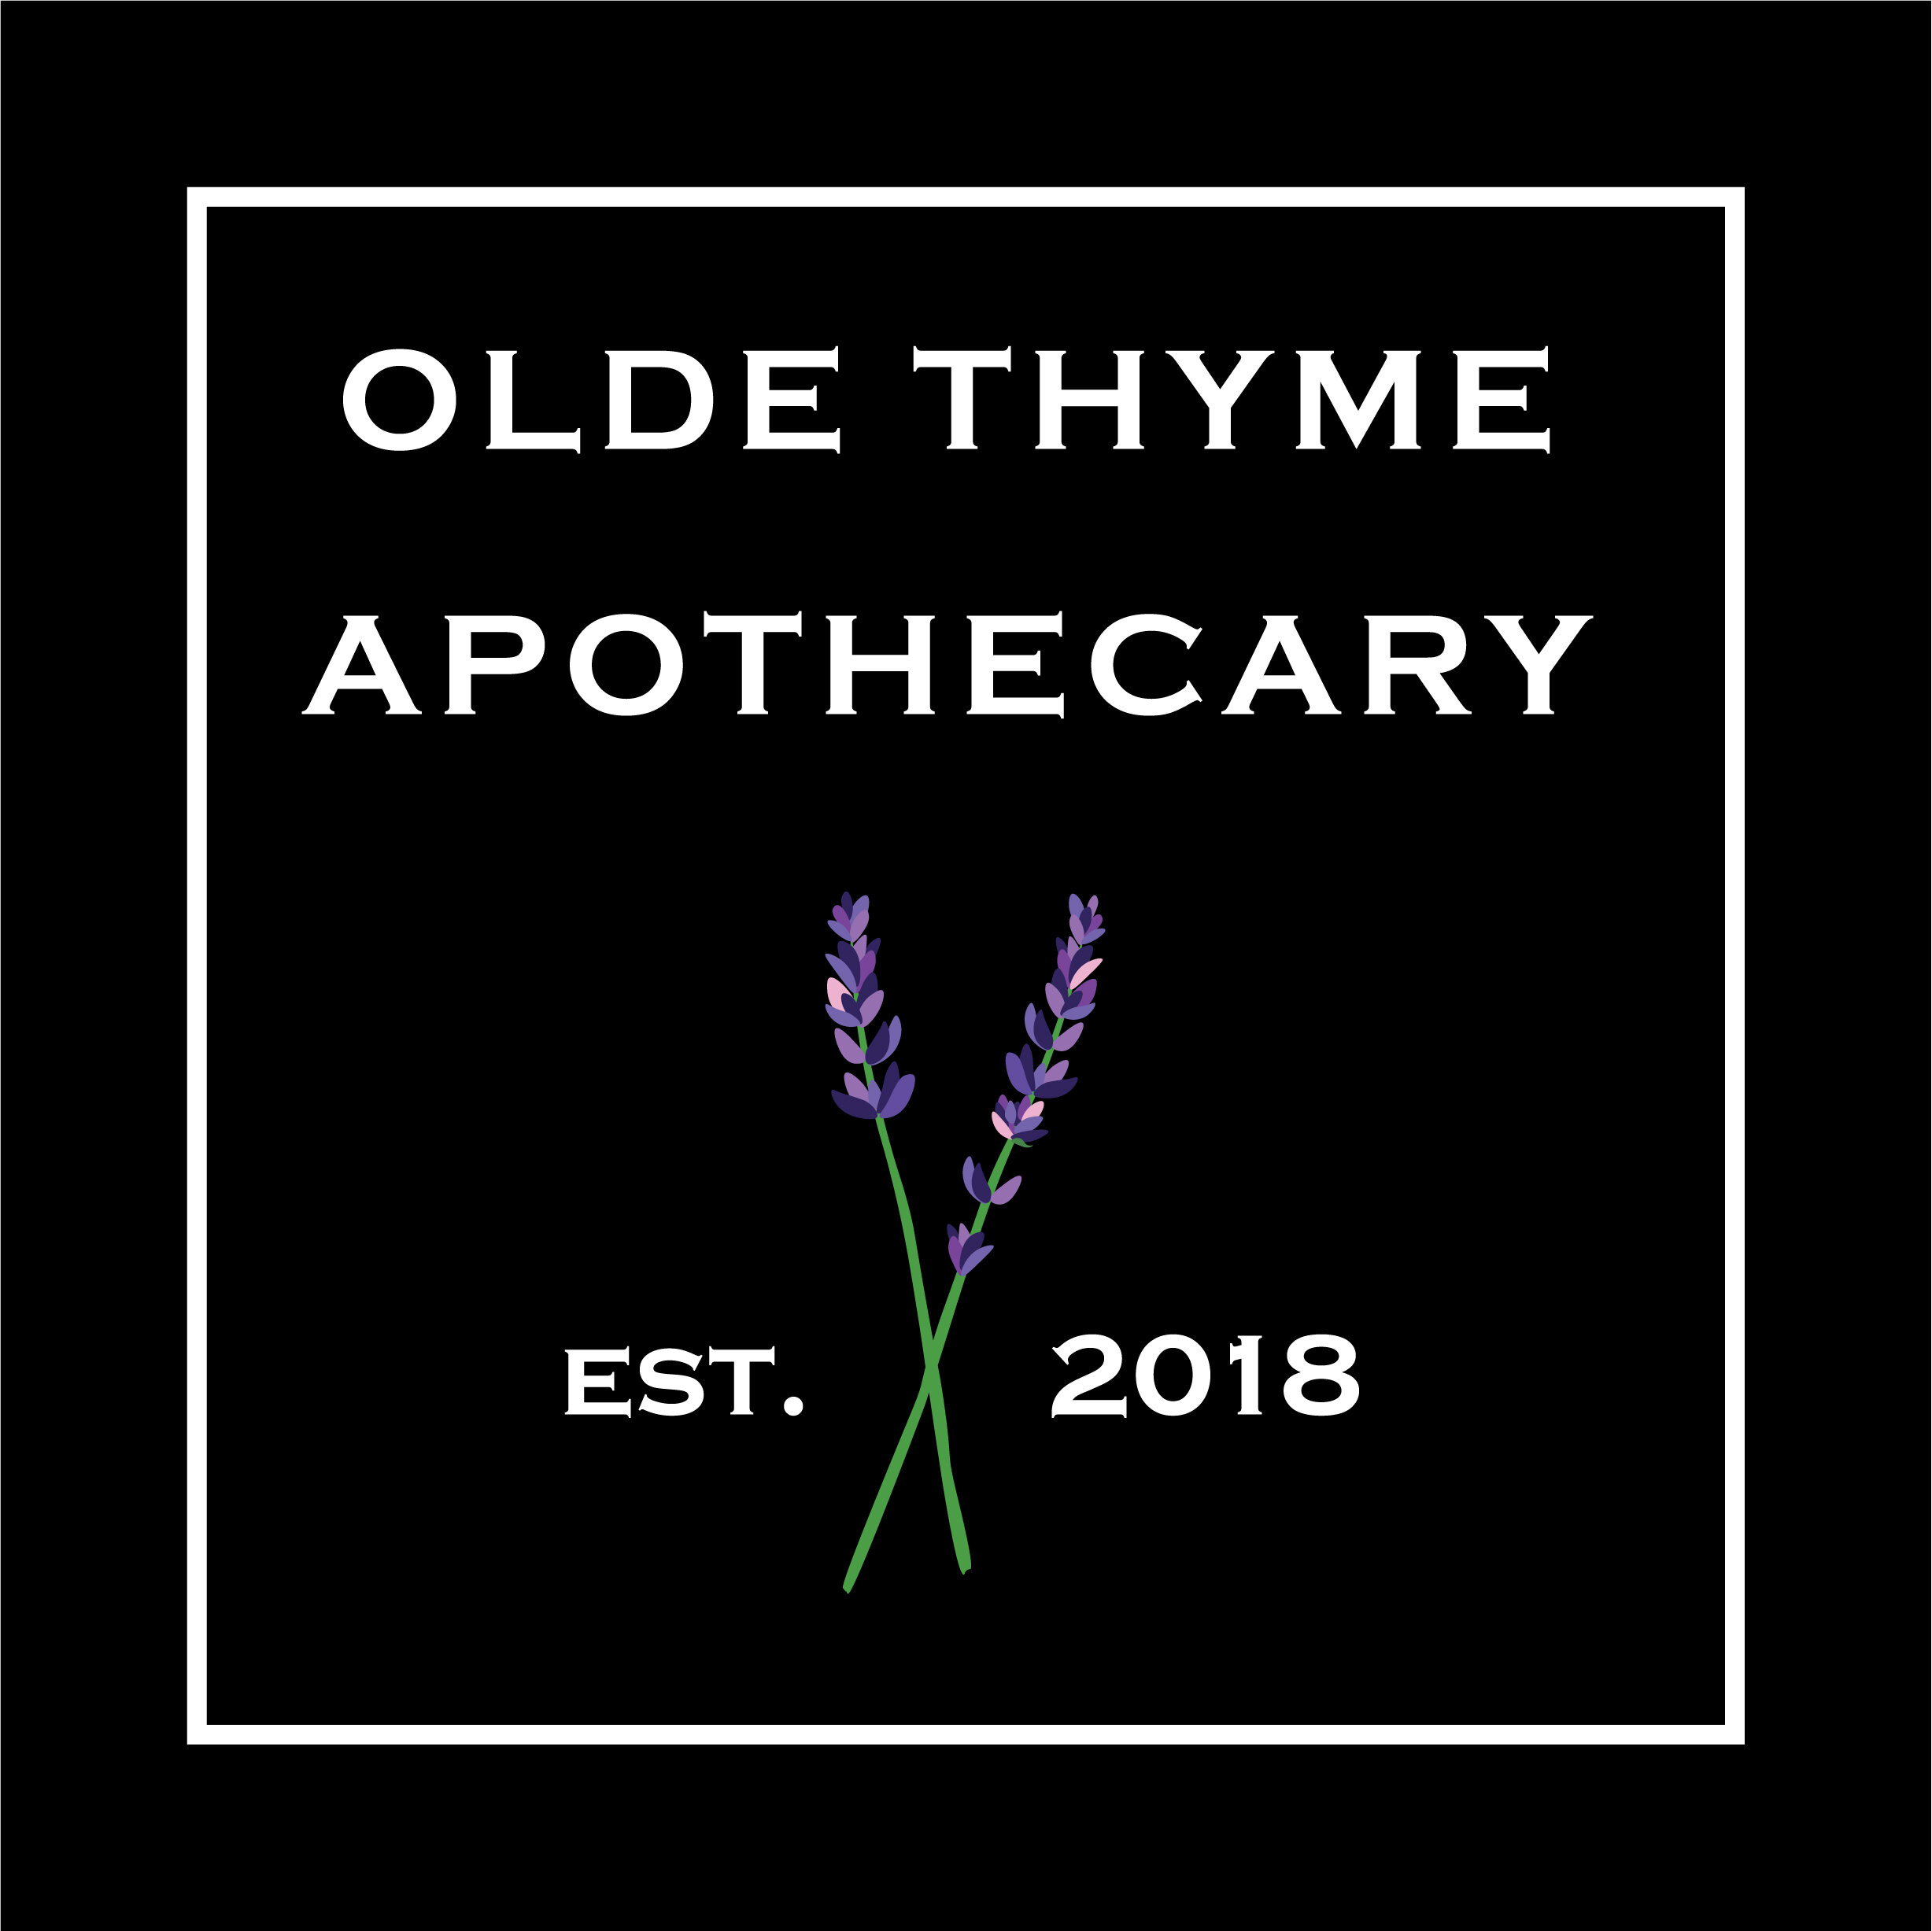 - Apothecary and Company's own herbal apothecary, Olde Thyme Apothecary, seeks to connect our community with herbal medicine by providing raw materials, education and carefully crafted products. We believe in getting back to the fundamentals of your health by using natural and holistic solutions by offering loose herbs, tonics, tinctures, bitters, salves, teas, and much more. Come in and see what we have to offer!